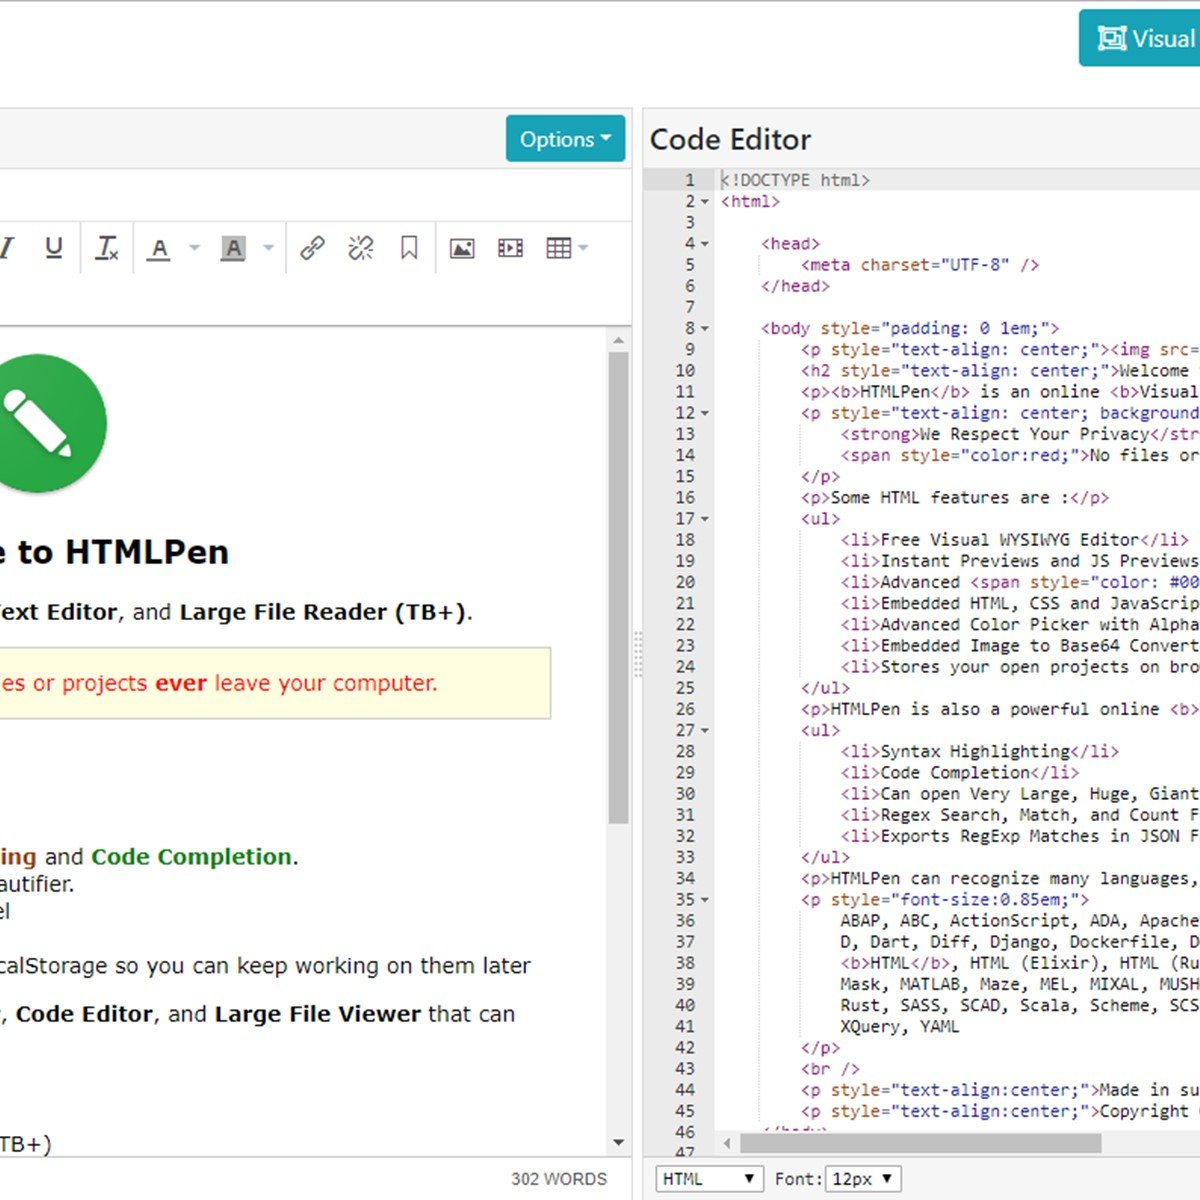 HTMLPen com Alternatives and Similar Websites and Apps